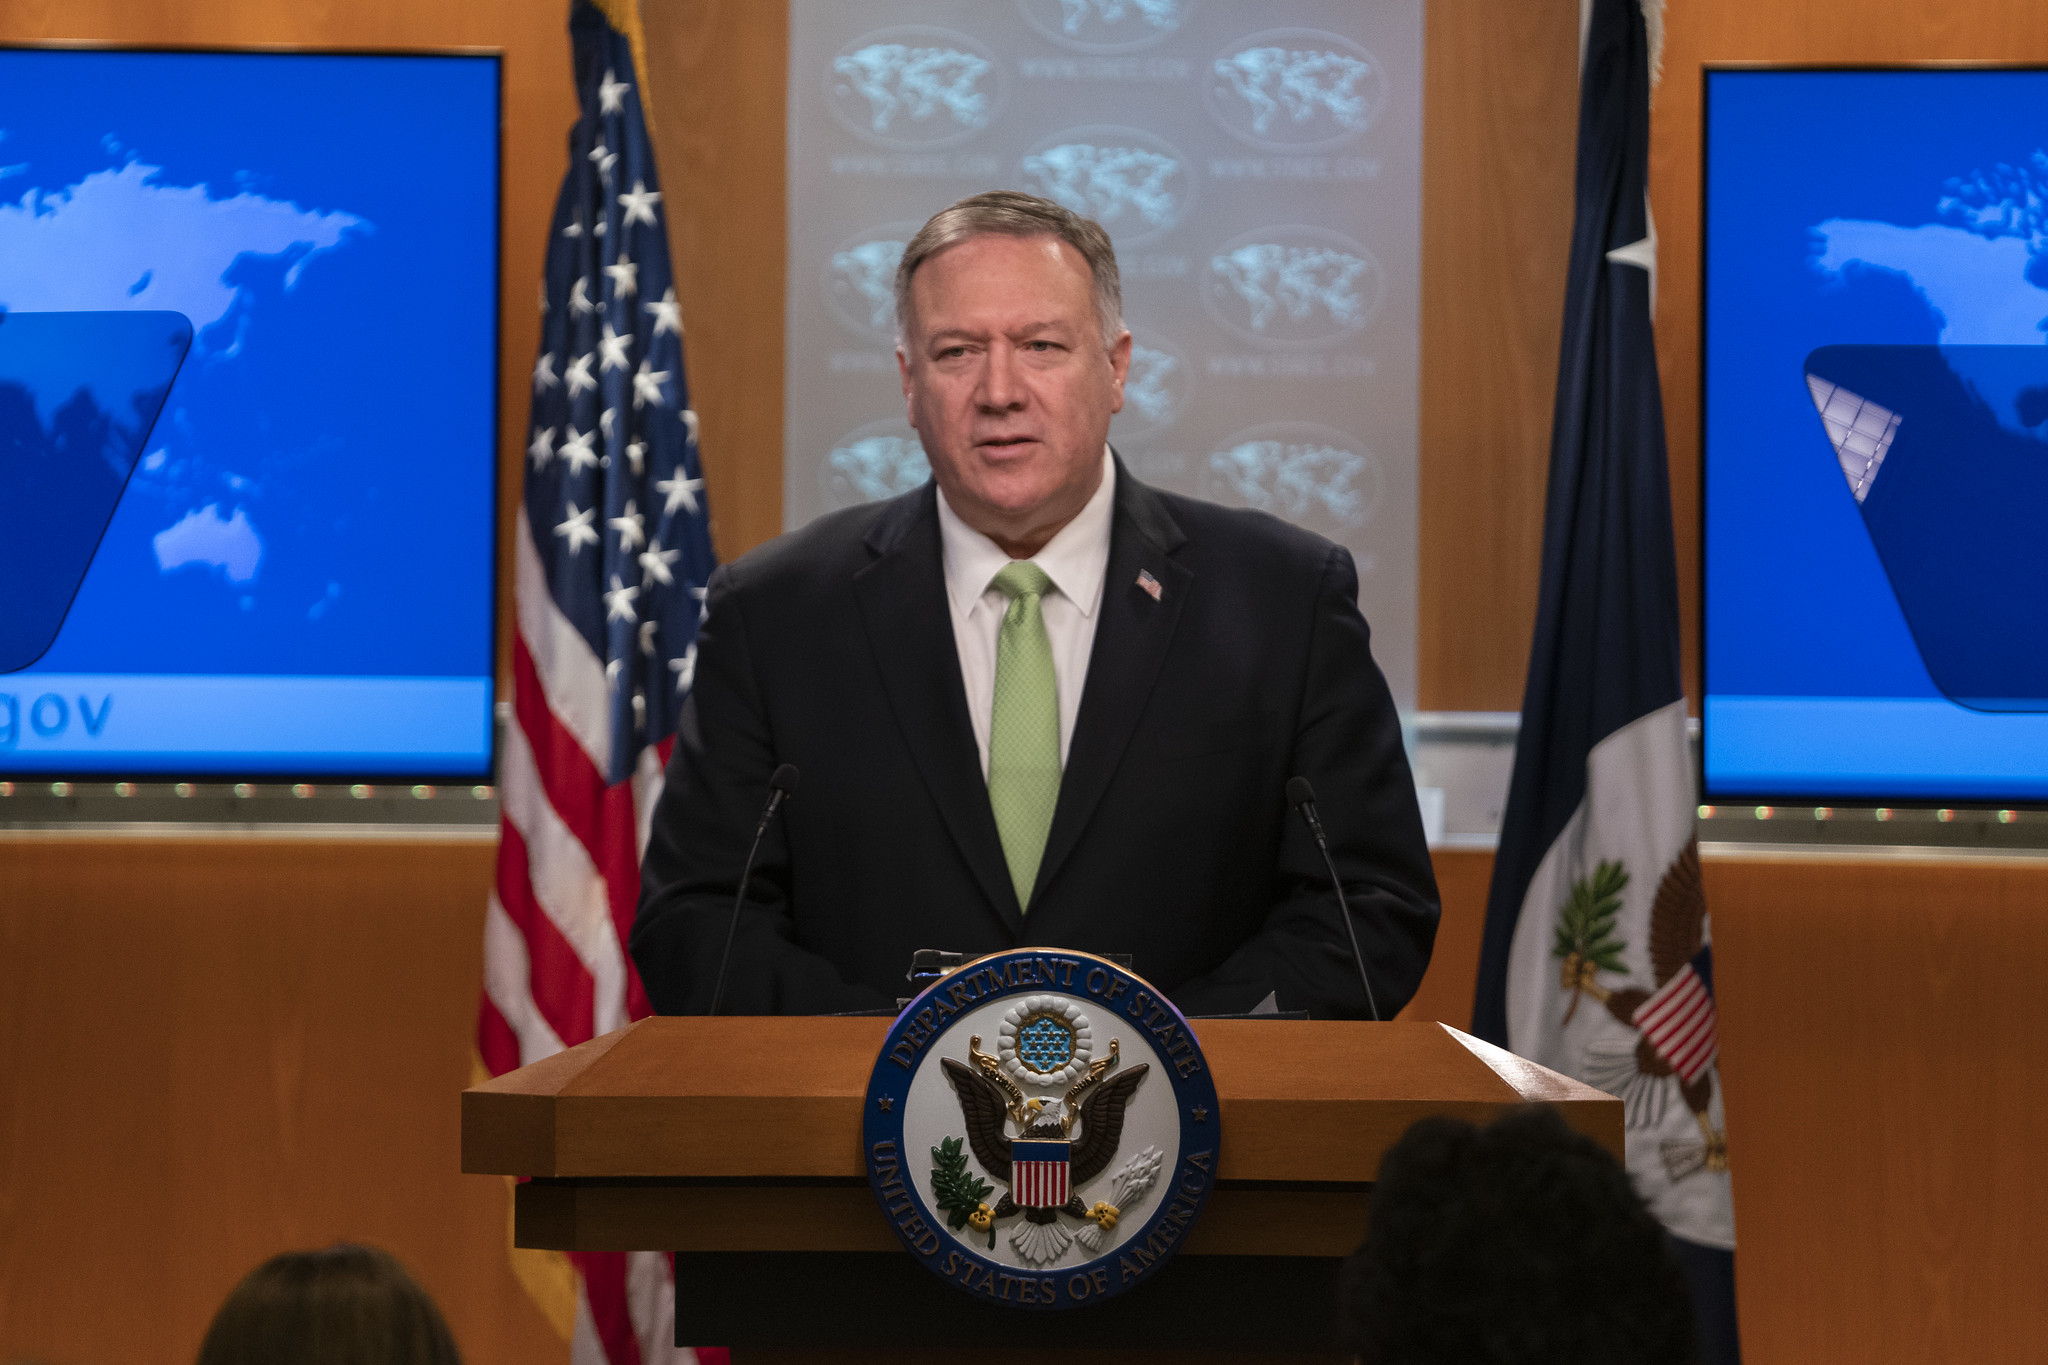 Secretary of State Mike Pompeo at a press conference